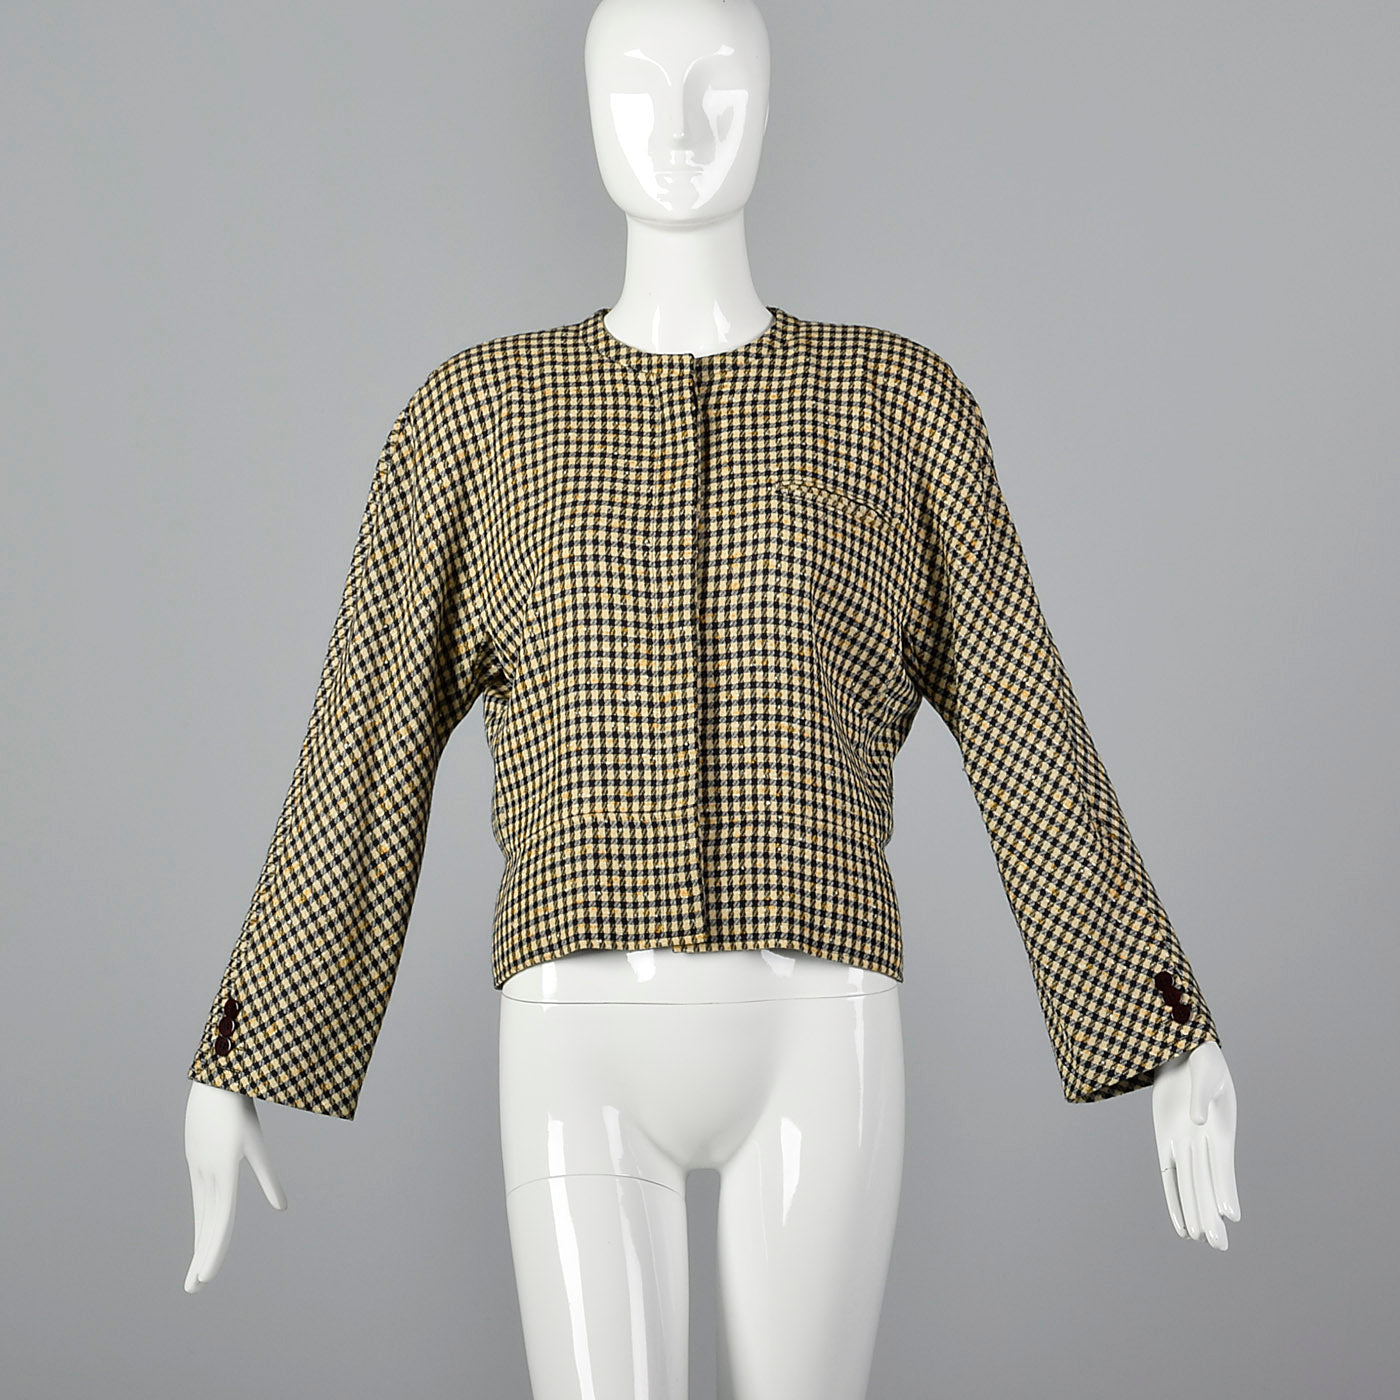 1980s Armani Black and Cream Jacket